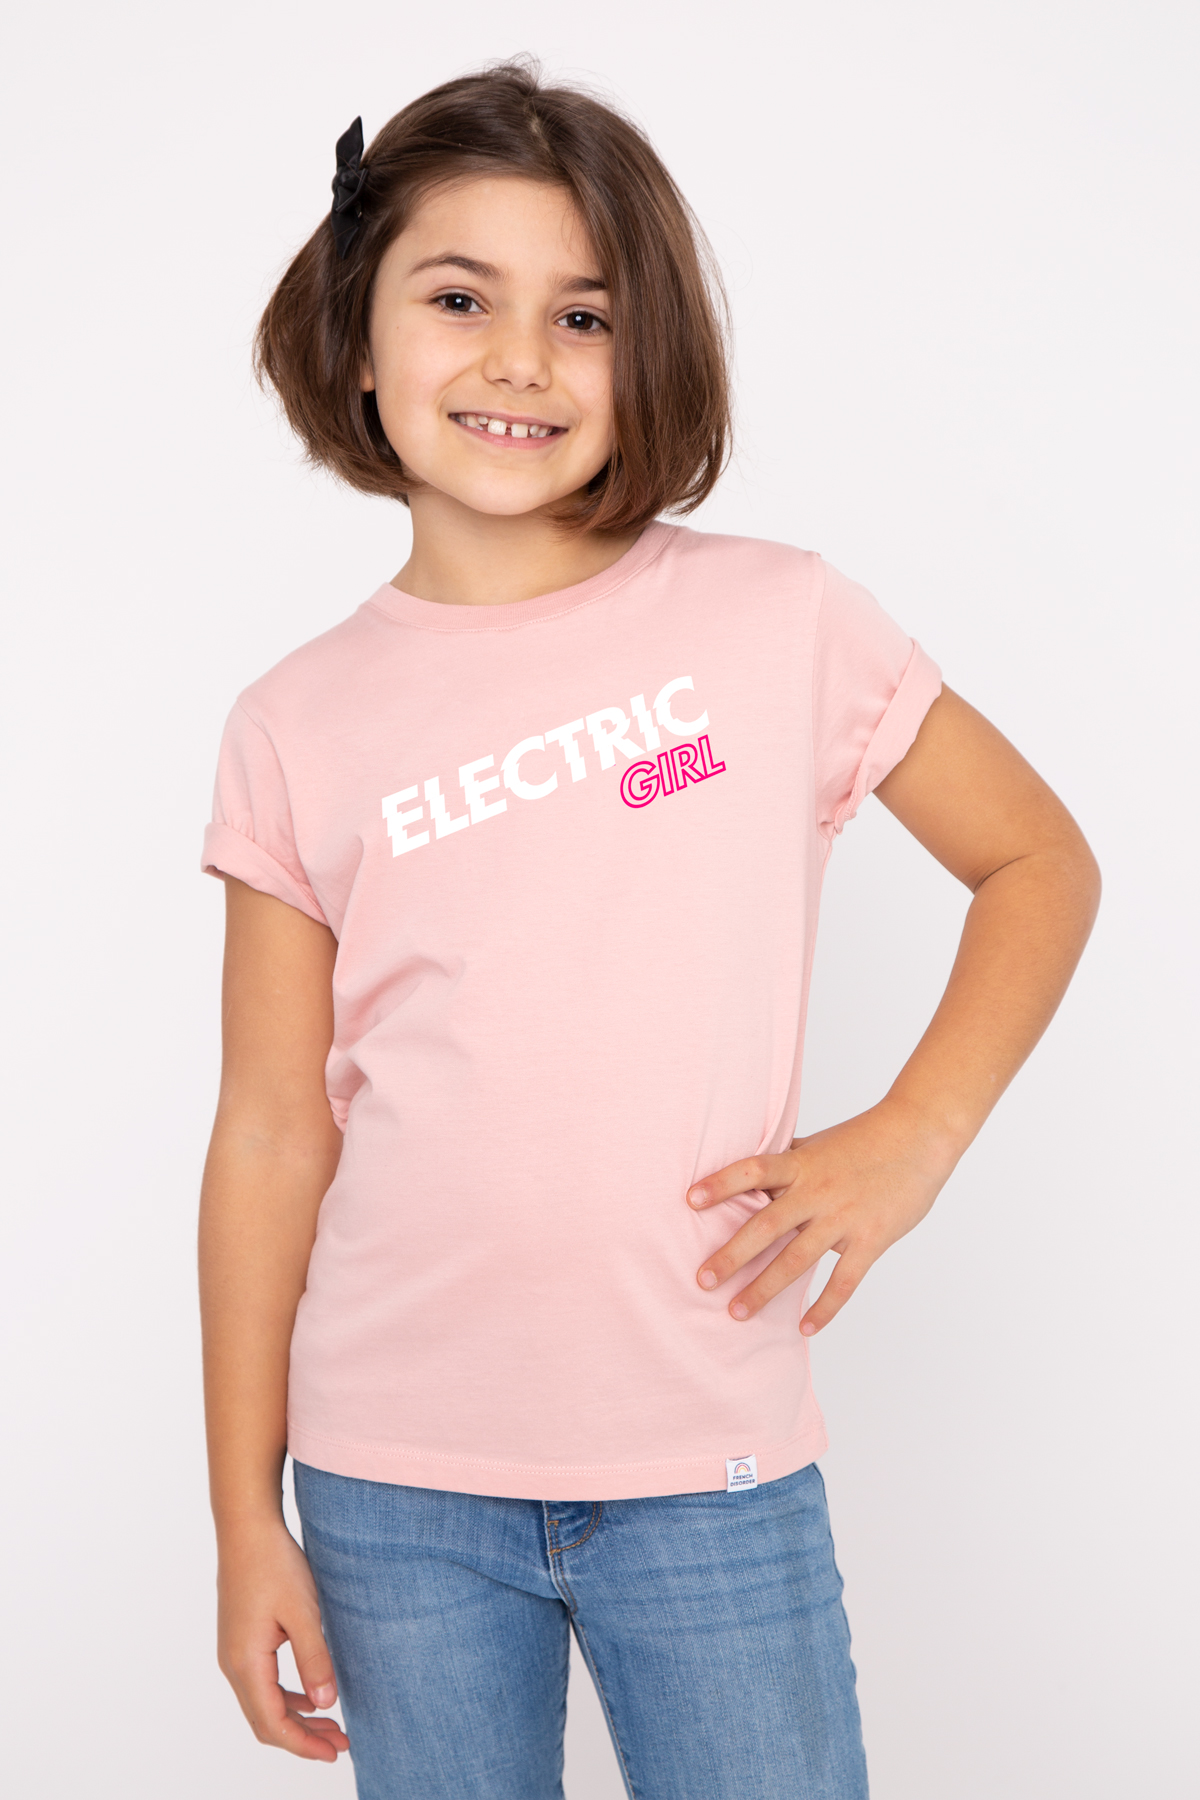 Tshirt ELECTRIC GIRL French Disorder